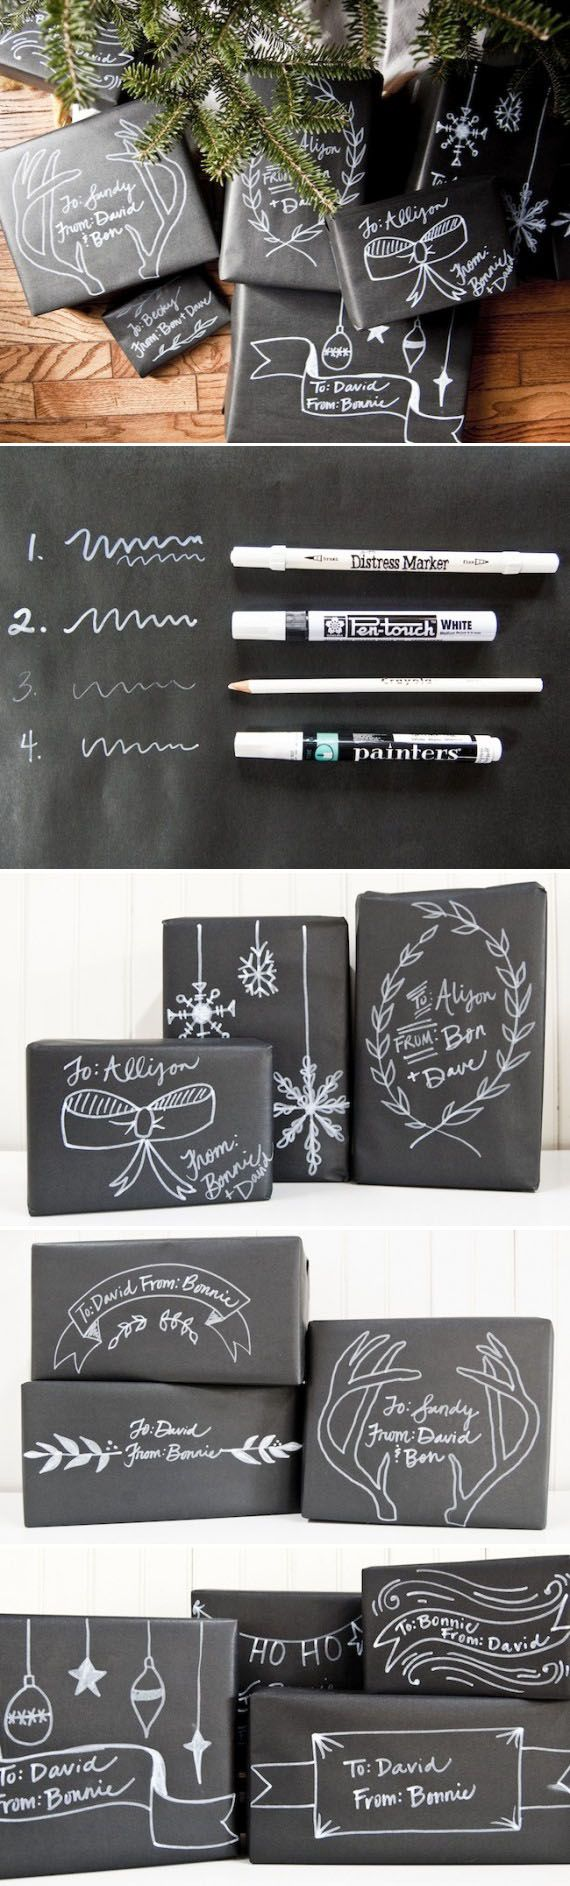 #diy #christmas #chalkboard #gift #packaging #wrap #giftwrap #christmasiscoming